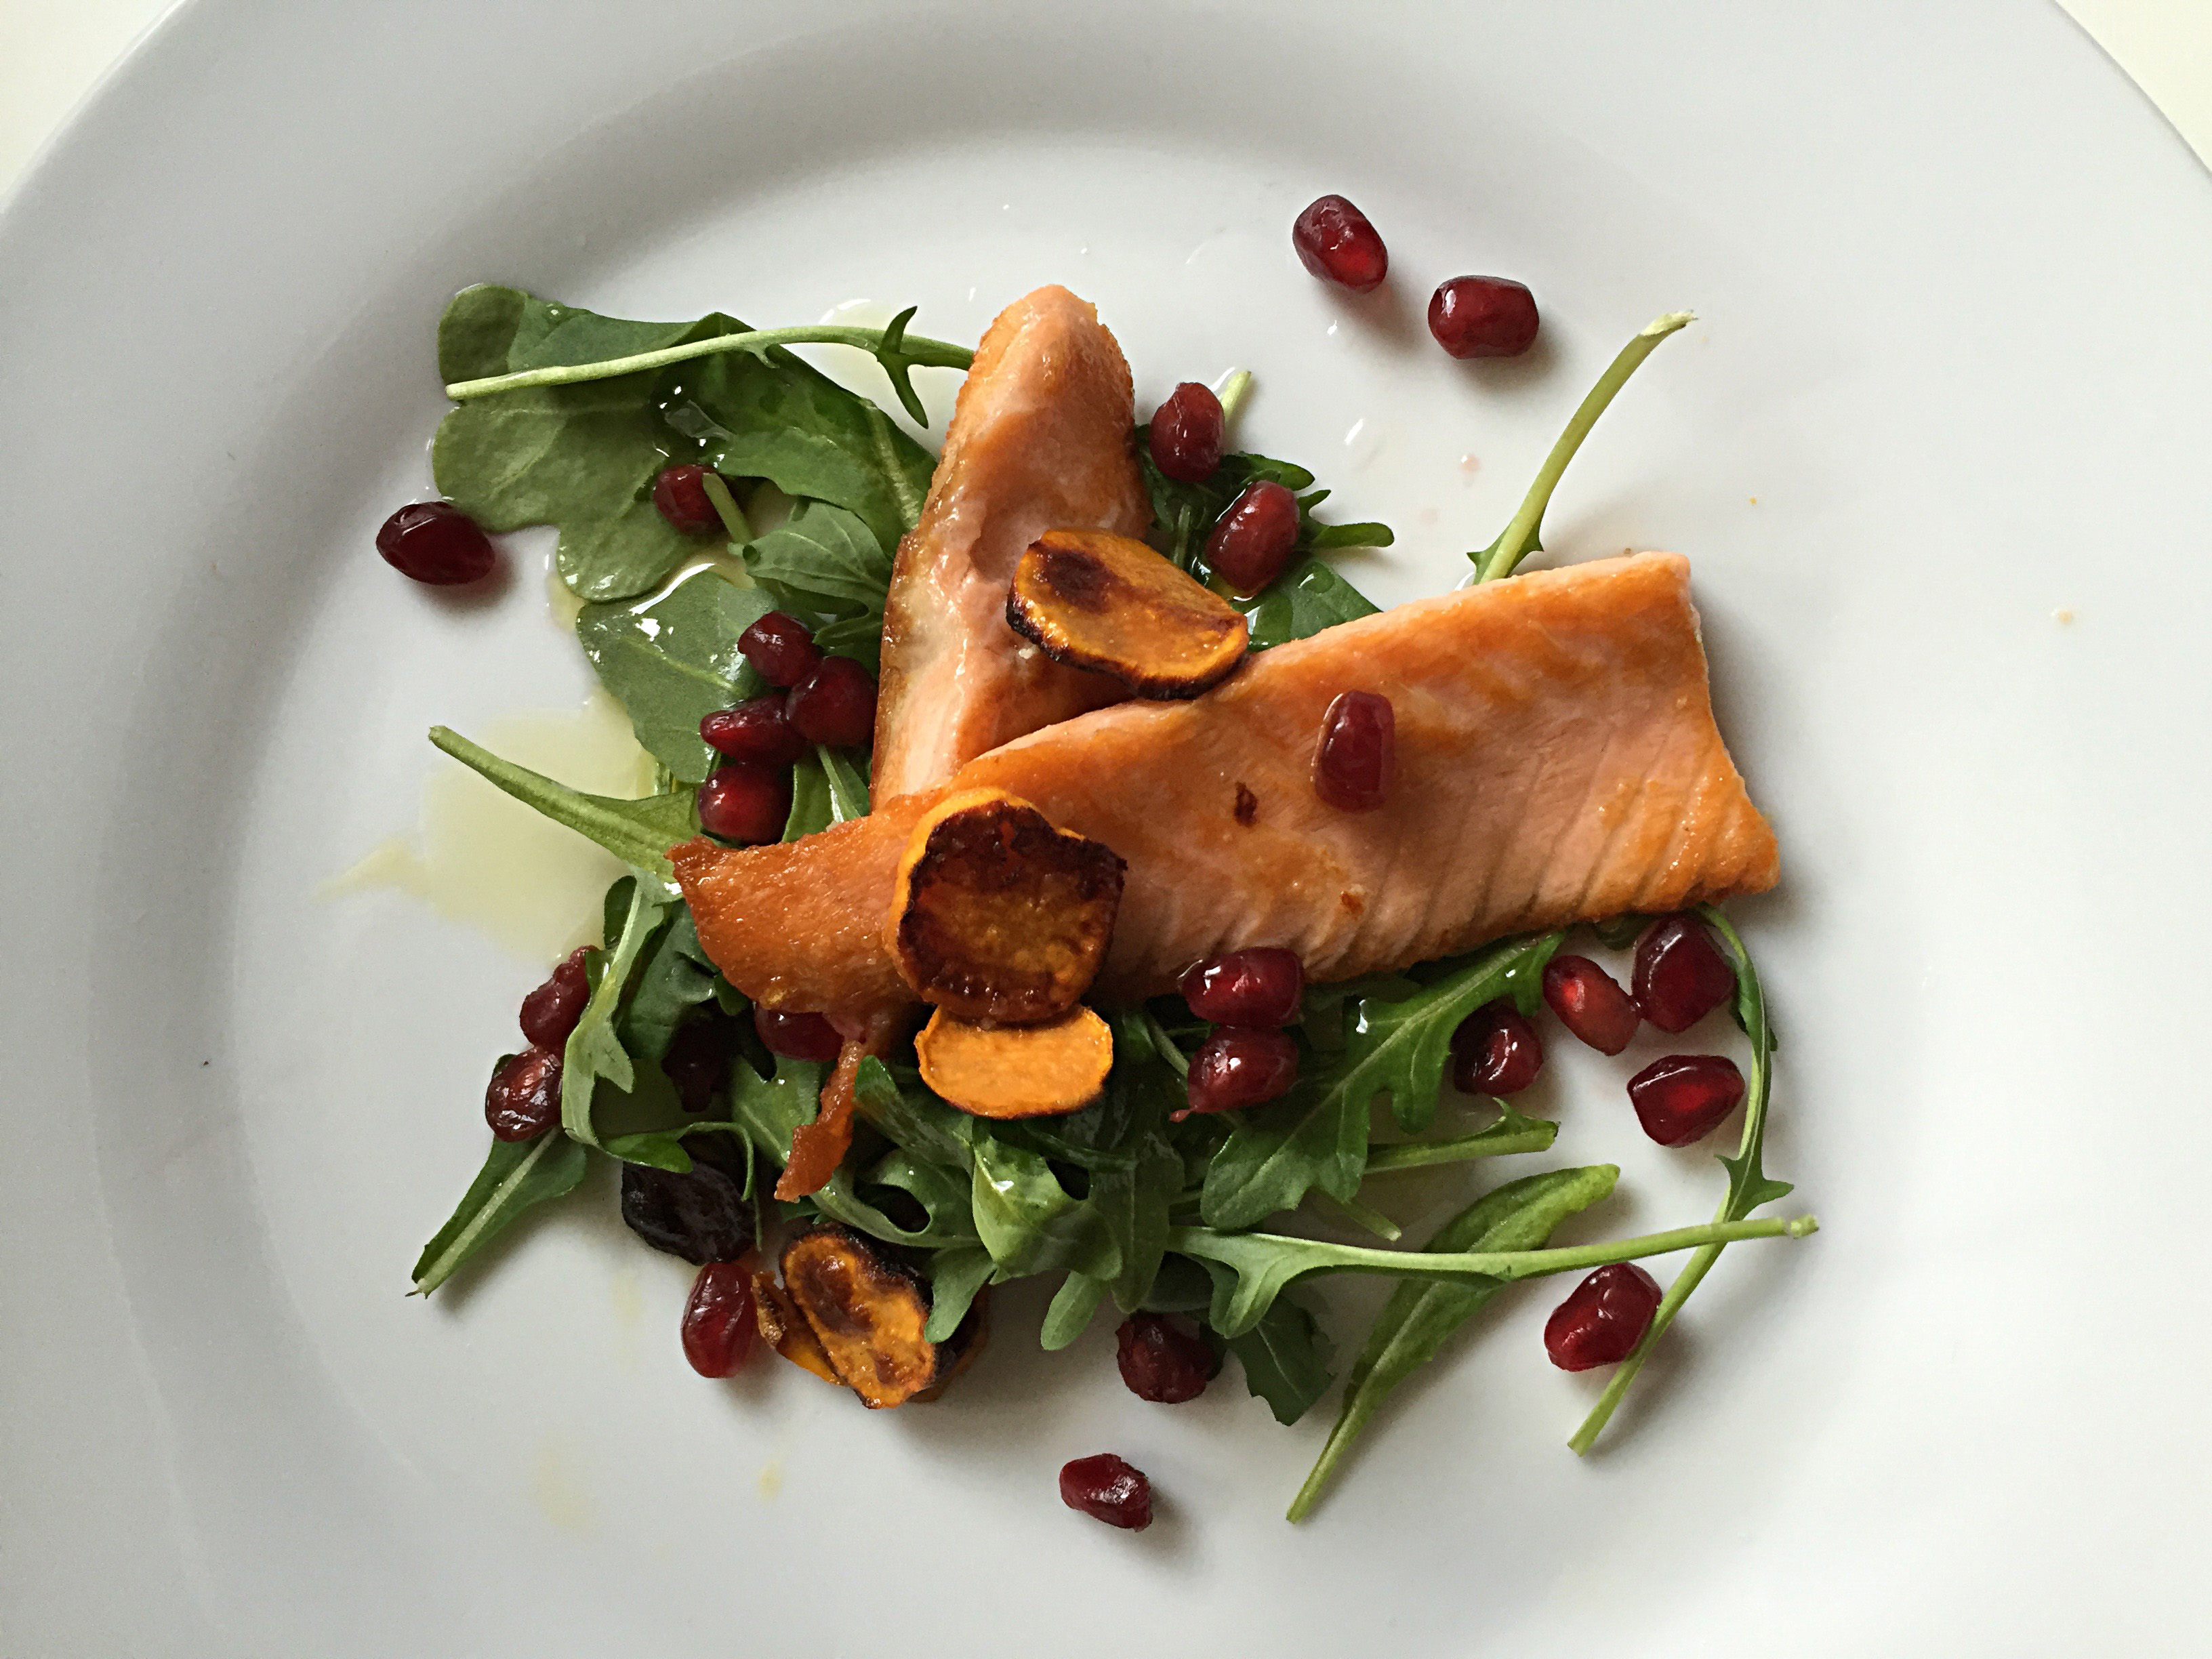 Salt-Seared Salmon Belly with Sweet Potato Chips, Arugula & Pomegranate Seeds